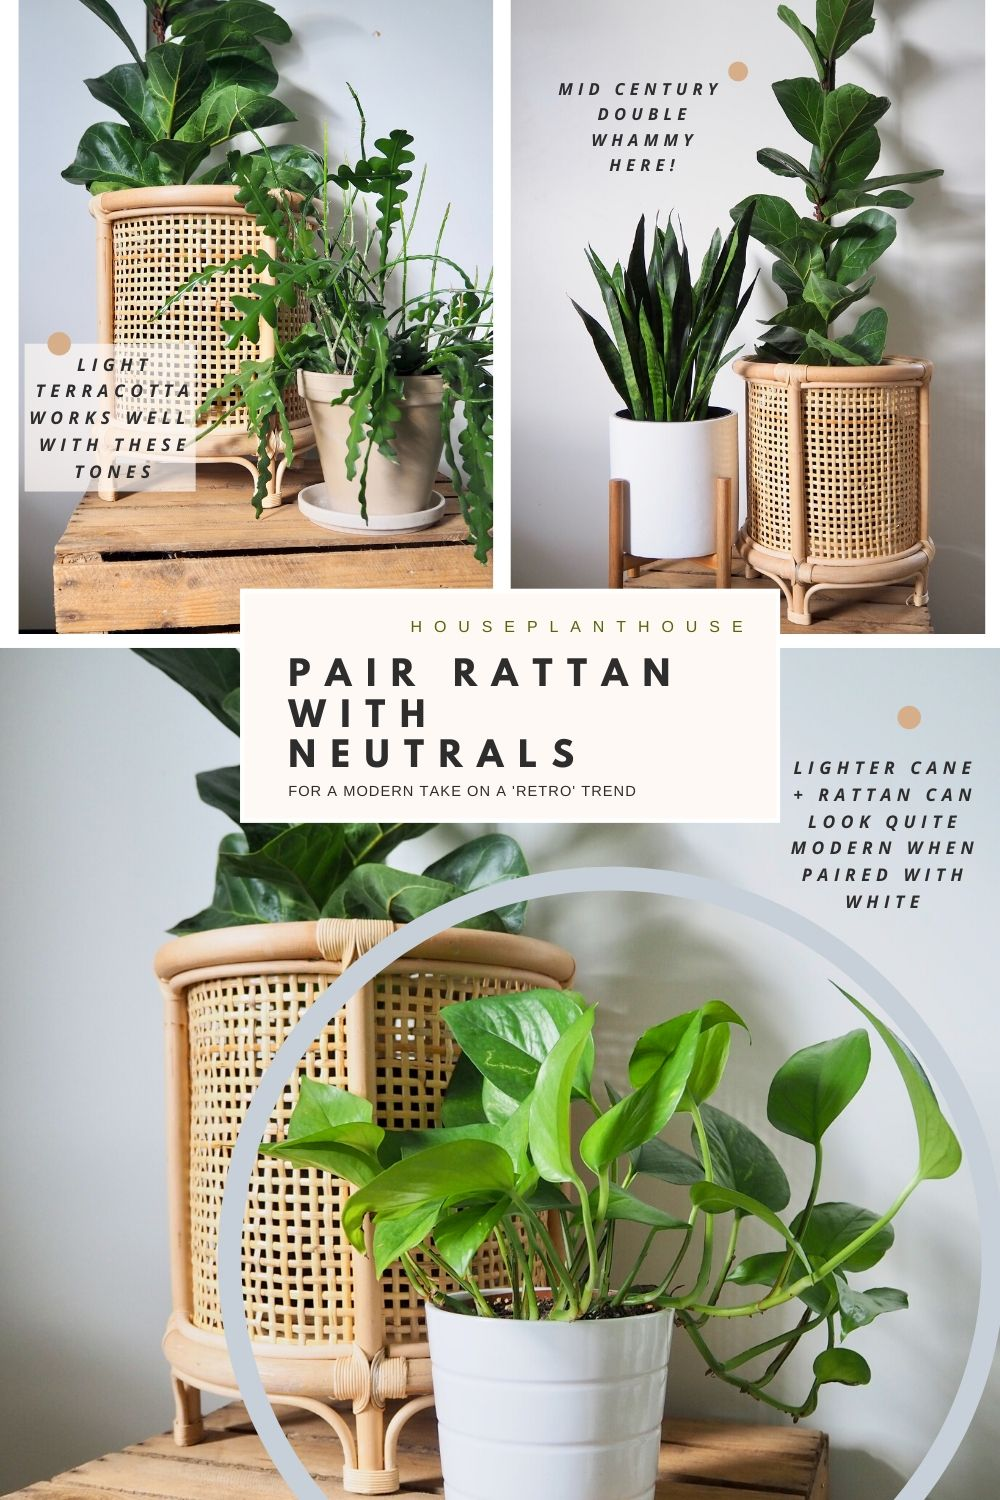 PAIR RATTAN WITH NEUTRALS